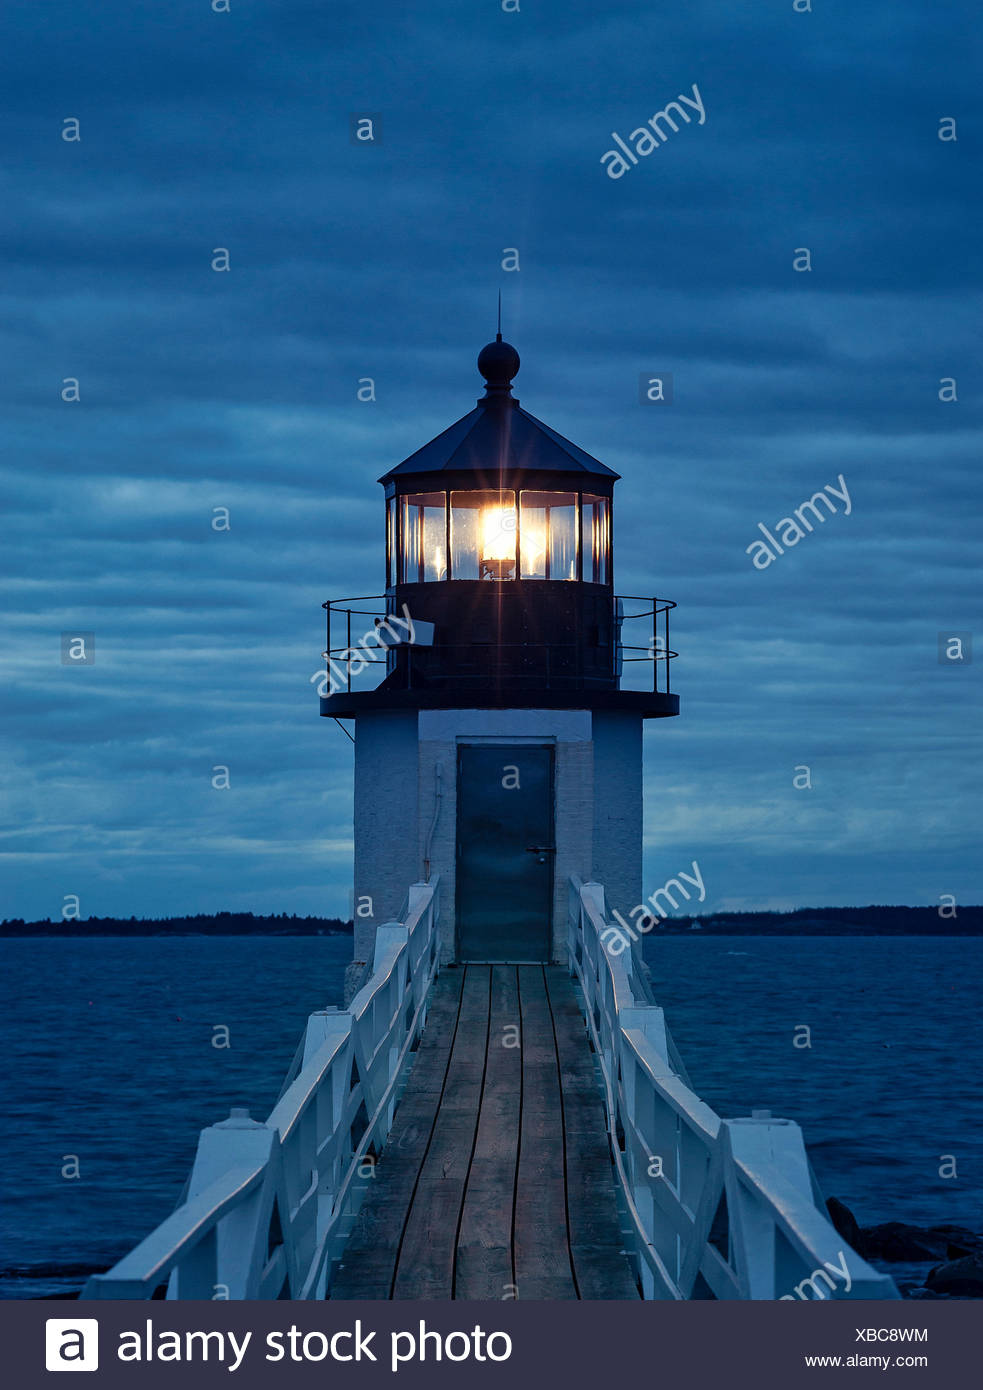 Marshall Point Light, Port Clyde, Maine, ME, USA - Stock Image